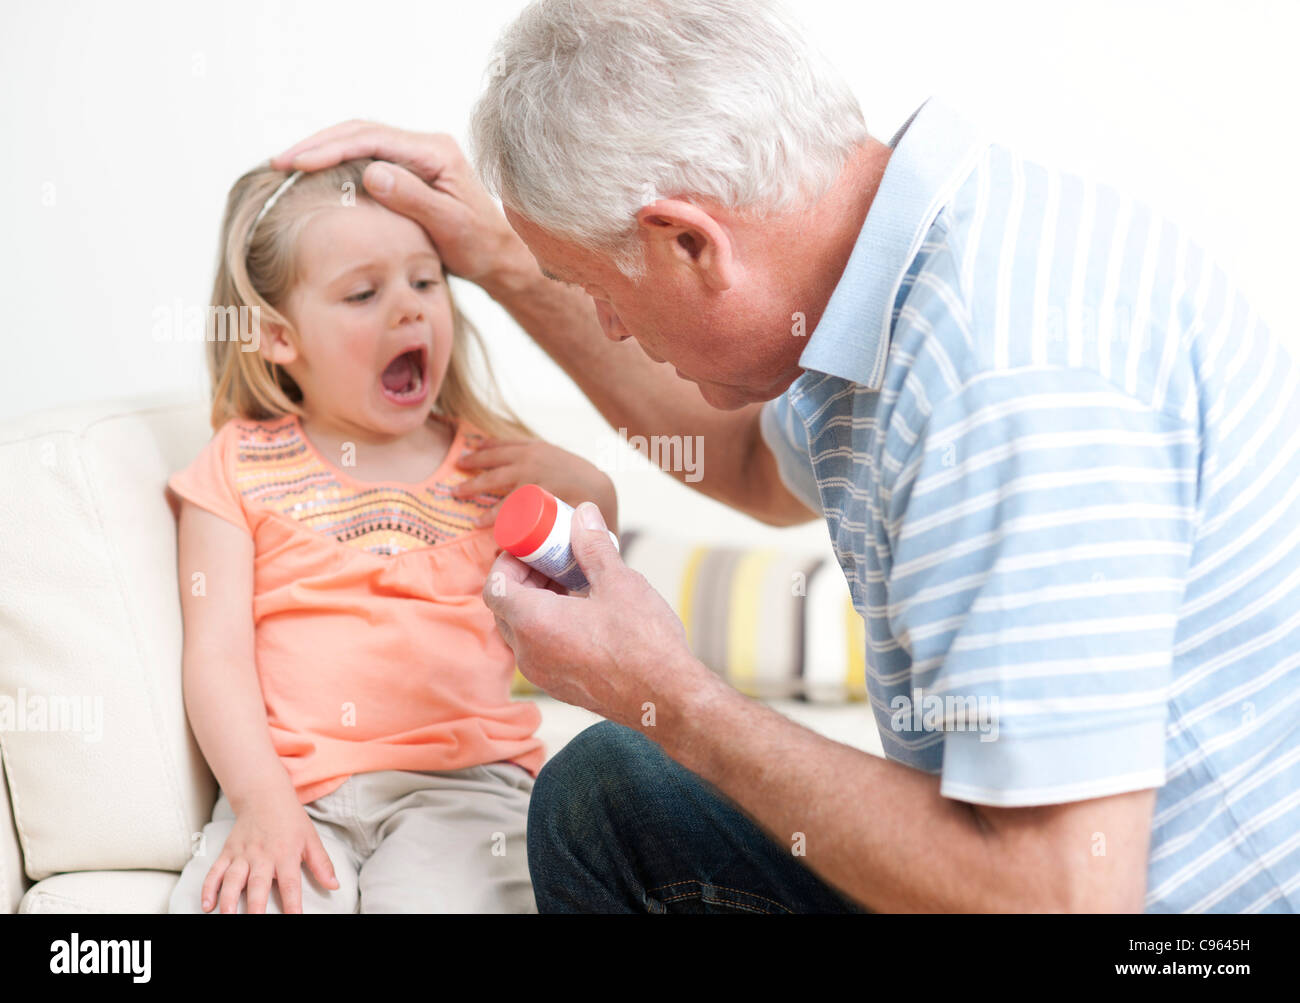 First aid for poisoning. Man checking a a young girl's mouth for pills. - Stock Image